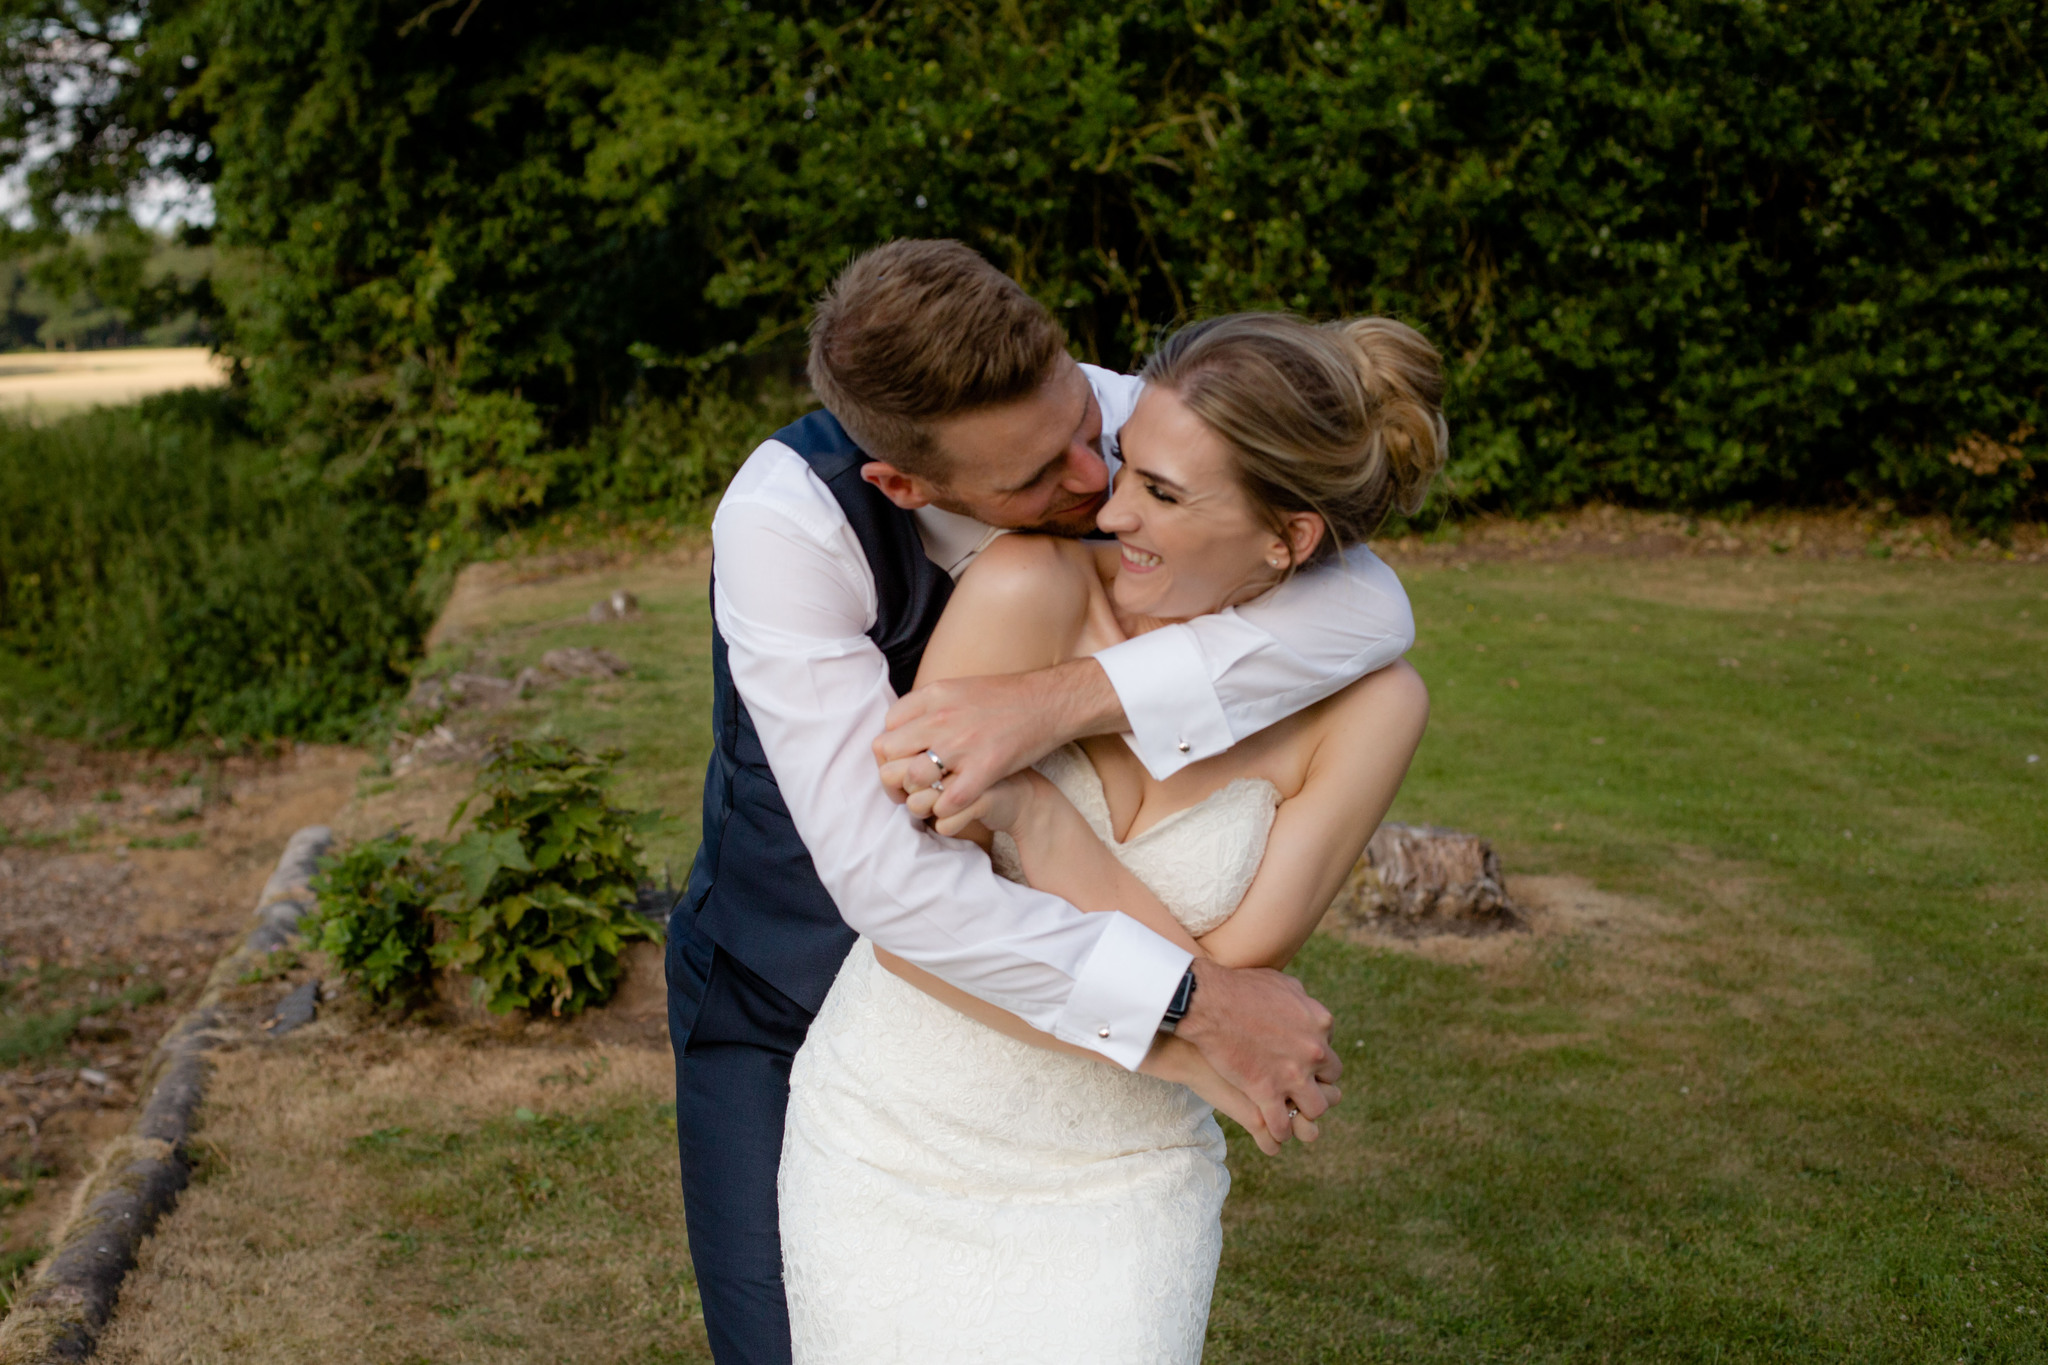 Shropshire wedding photographer golden hour romantic portraits of a couple laughing at Somerford Hall